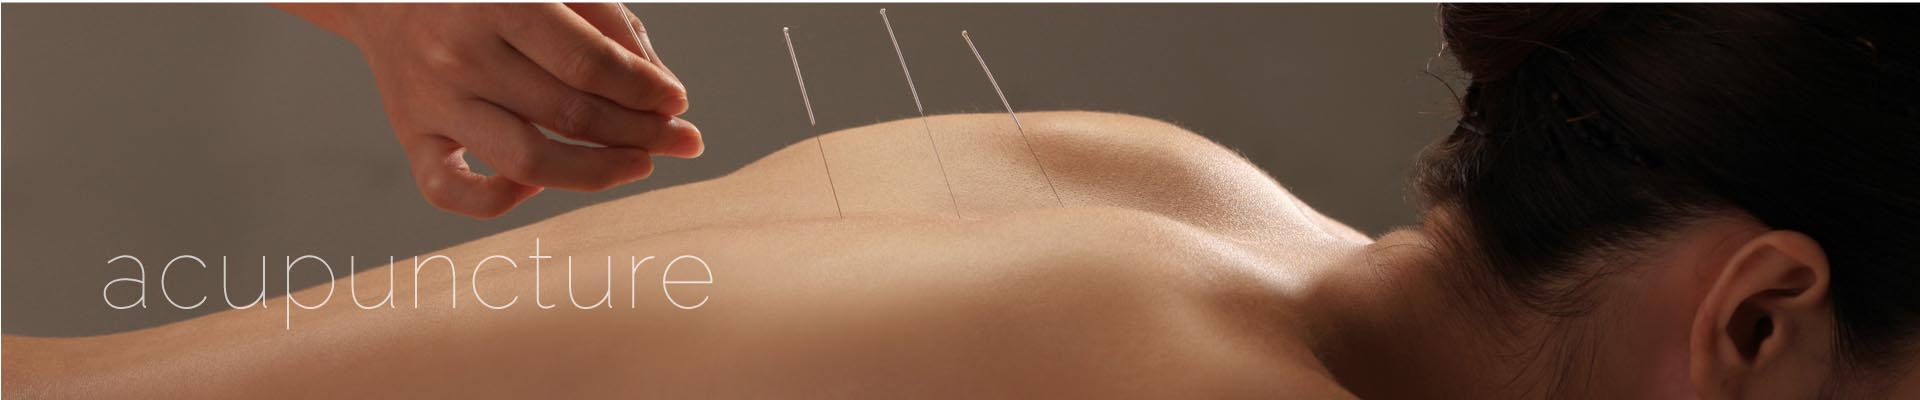 Acupuncture Special Offers